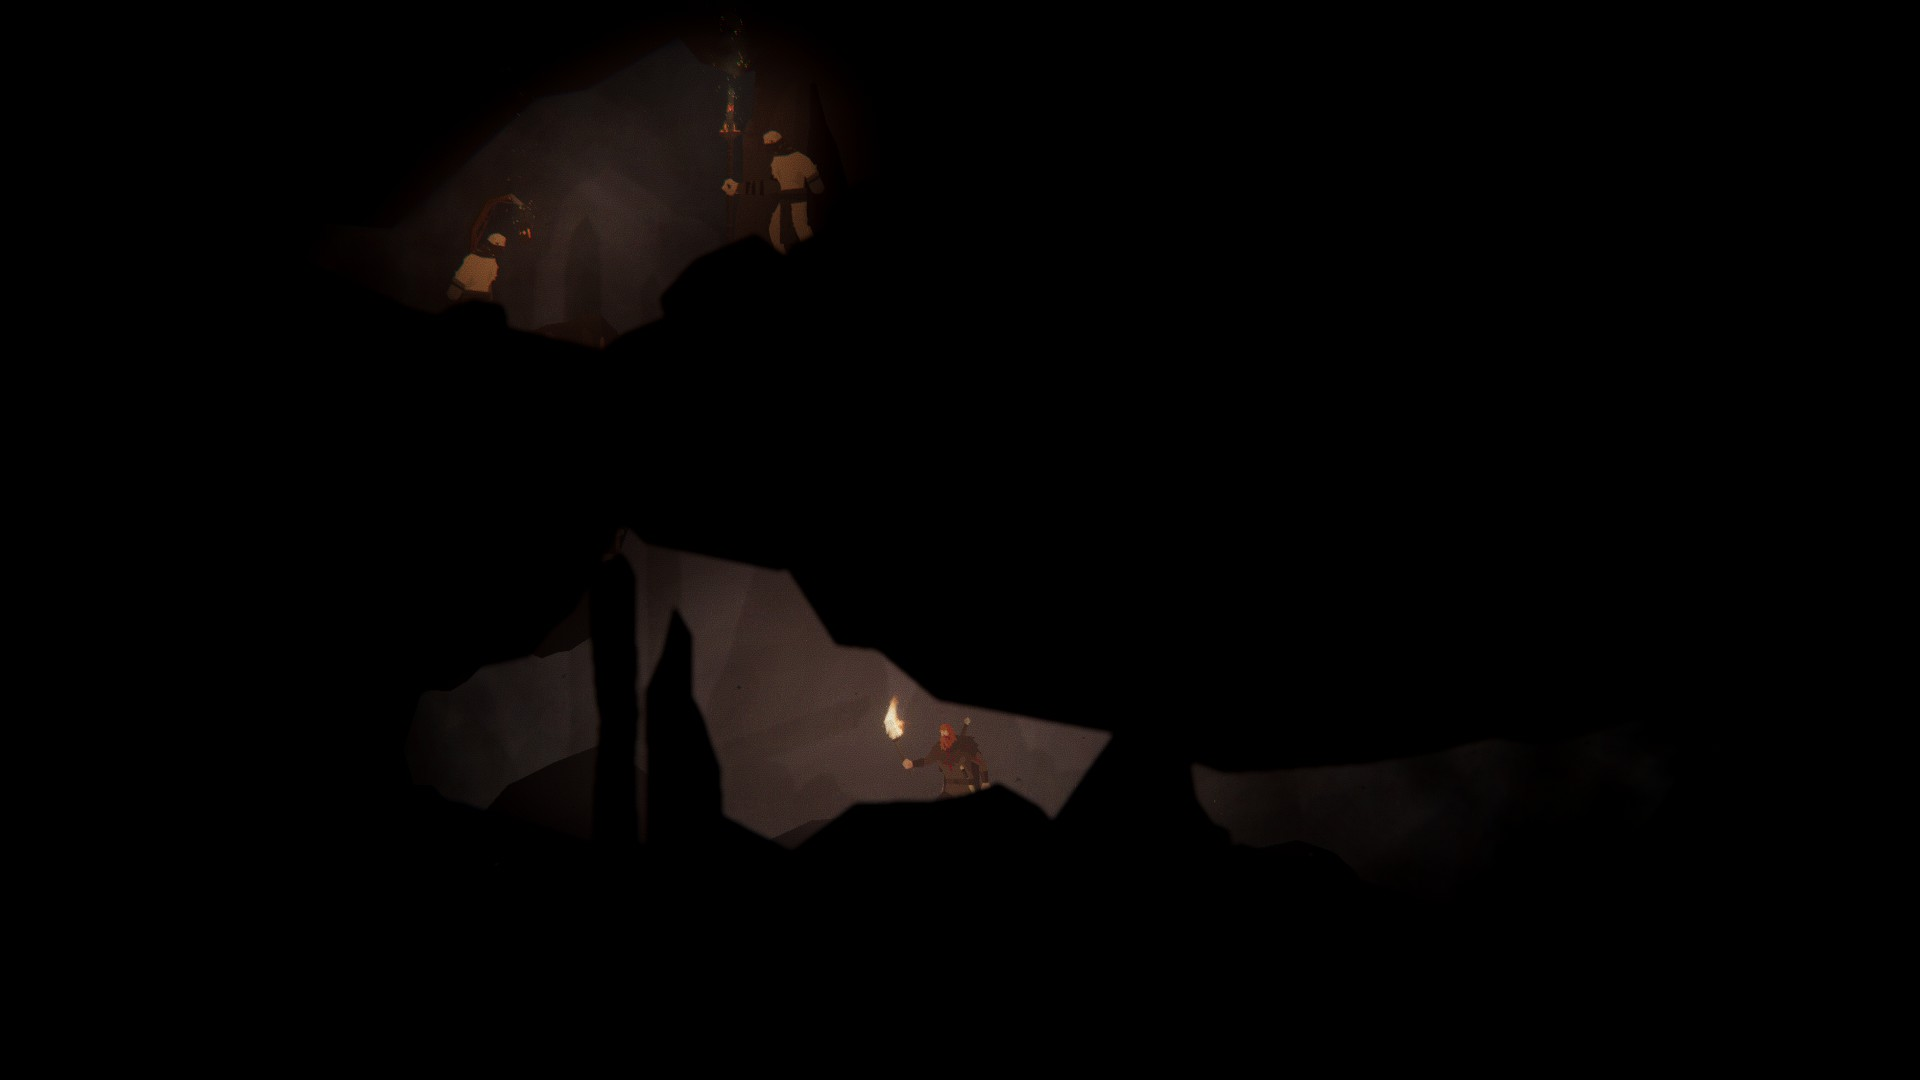 Our brave fellow holds a torch and trudges along a tunnel in a dark cave system. The ceiling is low. Above him, in another bit of cave, we see what look like two figures, possibly lying in wait for him.